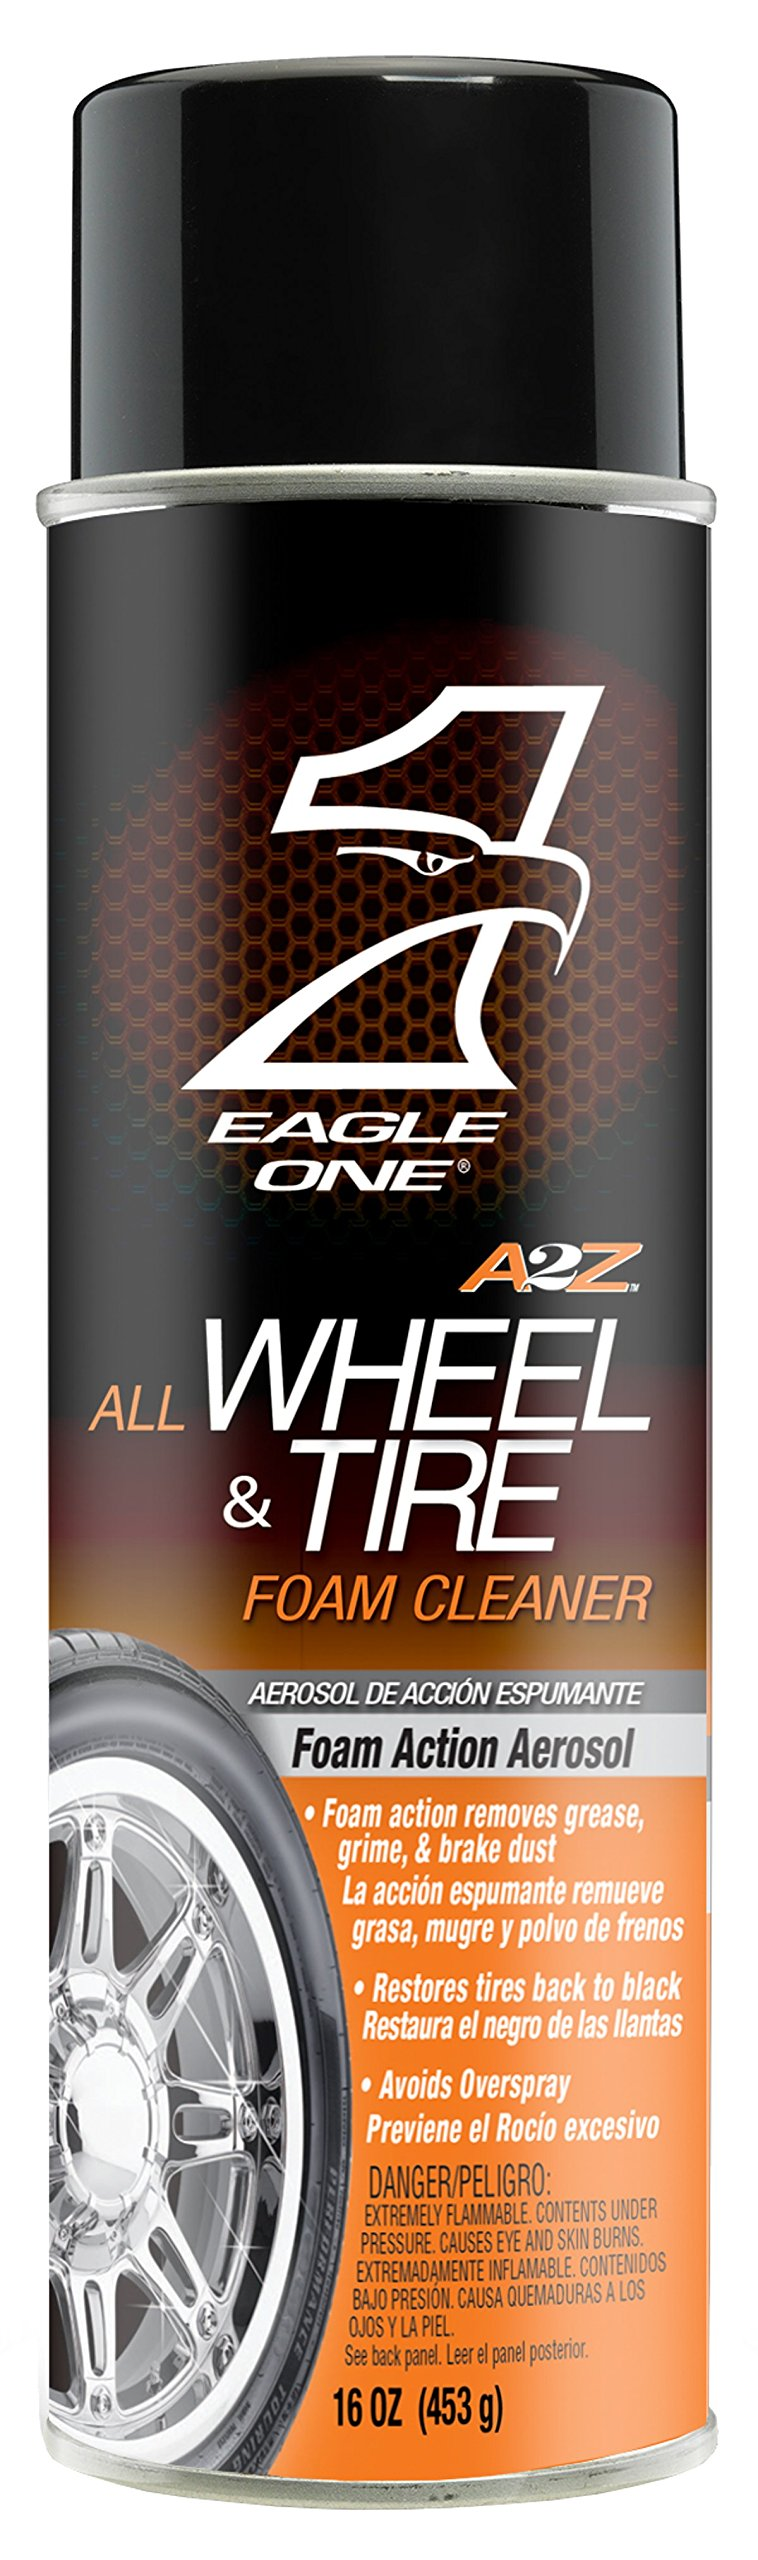 Eagle One E301345600 A2Z All Wheel and Tire Foam Cleaner, 16 fl. oz.